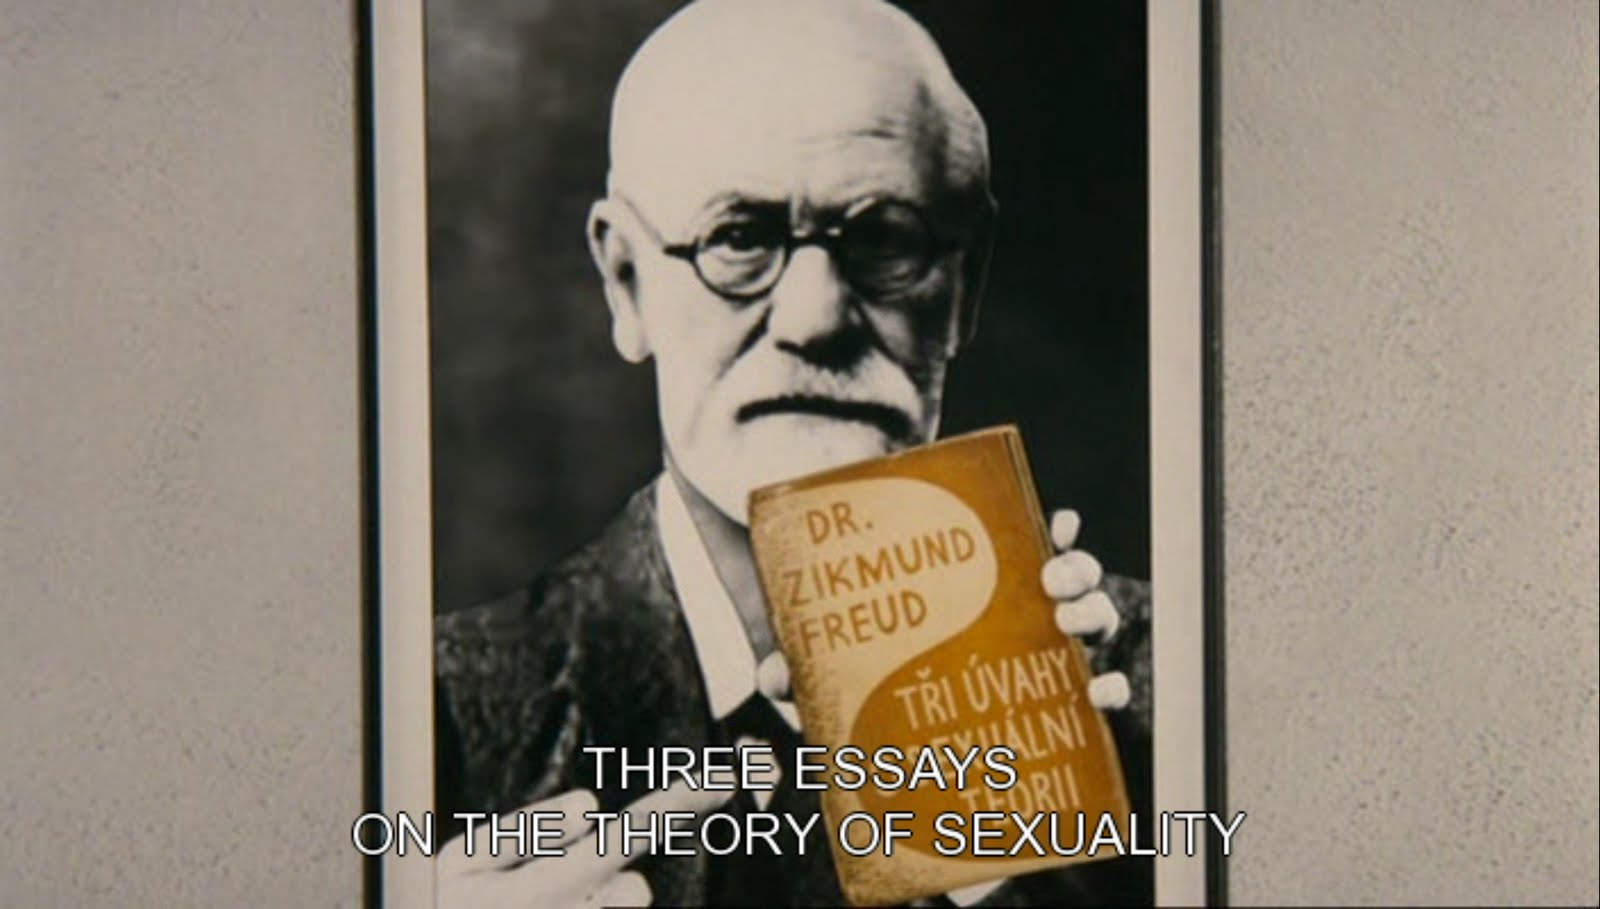 freud jung and kletman essay Freud vs jung sigmund freud and carl jung: similarities and differences in dream analysis sigmund freud and carl jung are two renowned psychoanalysts who contributed great work to the interpretation of dreams - freud vs jung introduction.